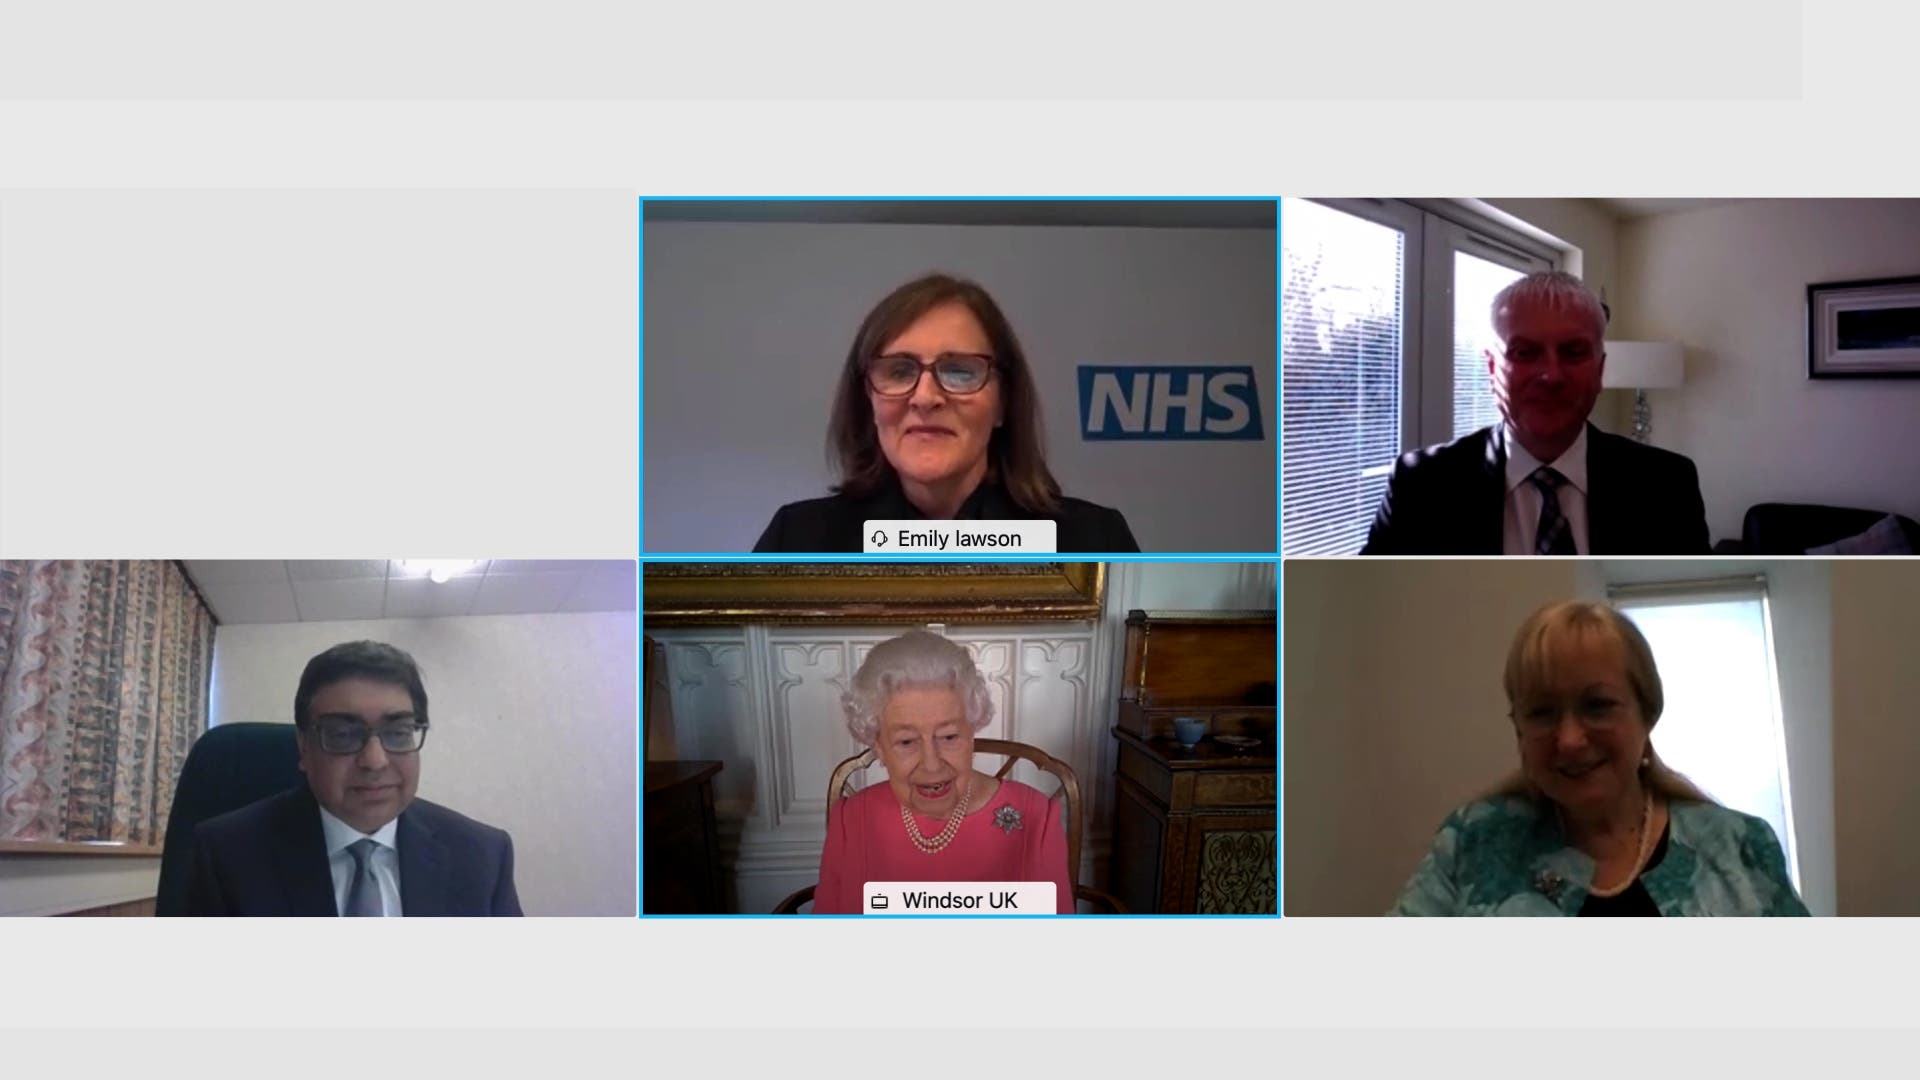 A still of the video call between the Queen and health officials